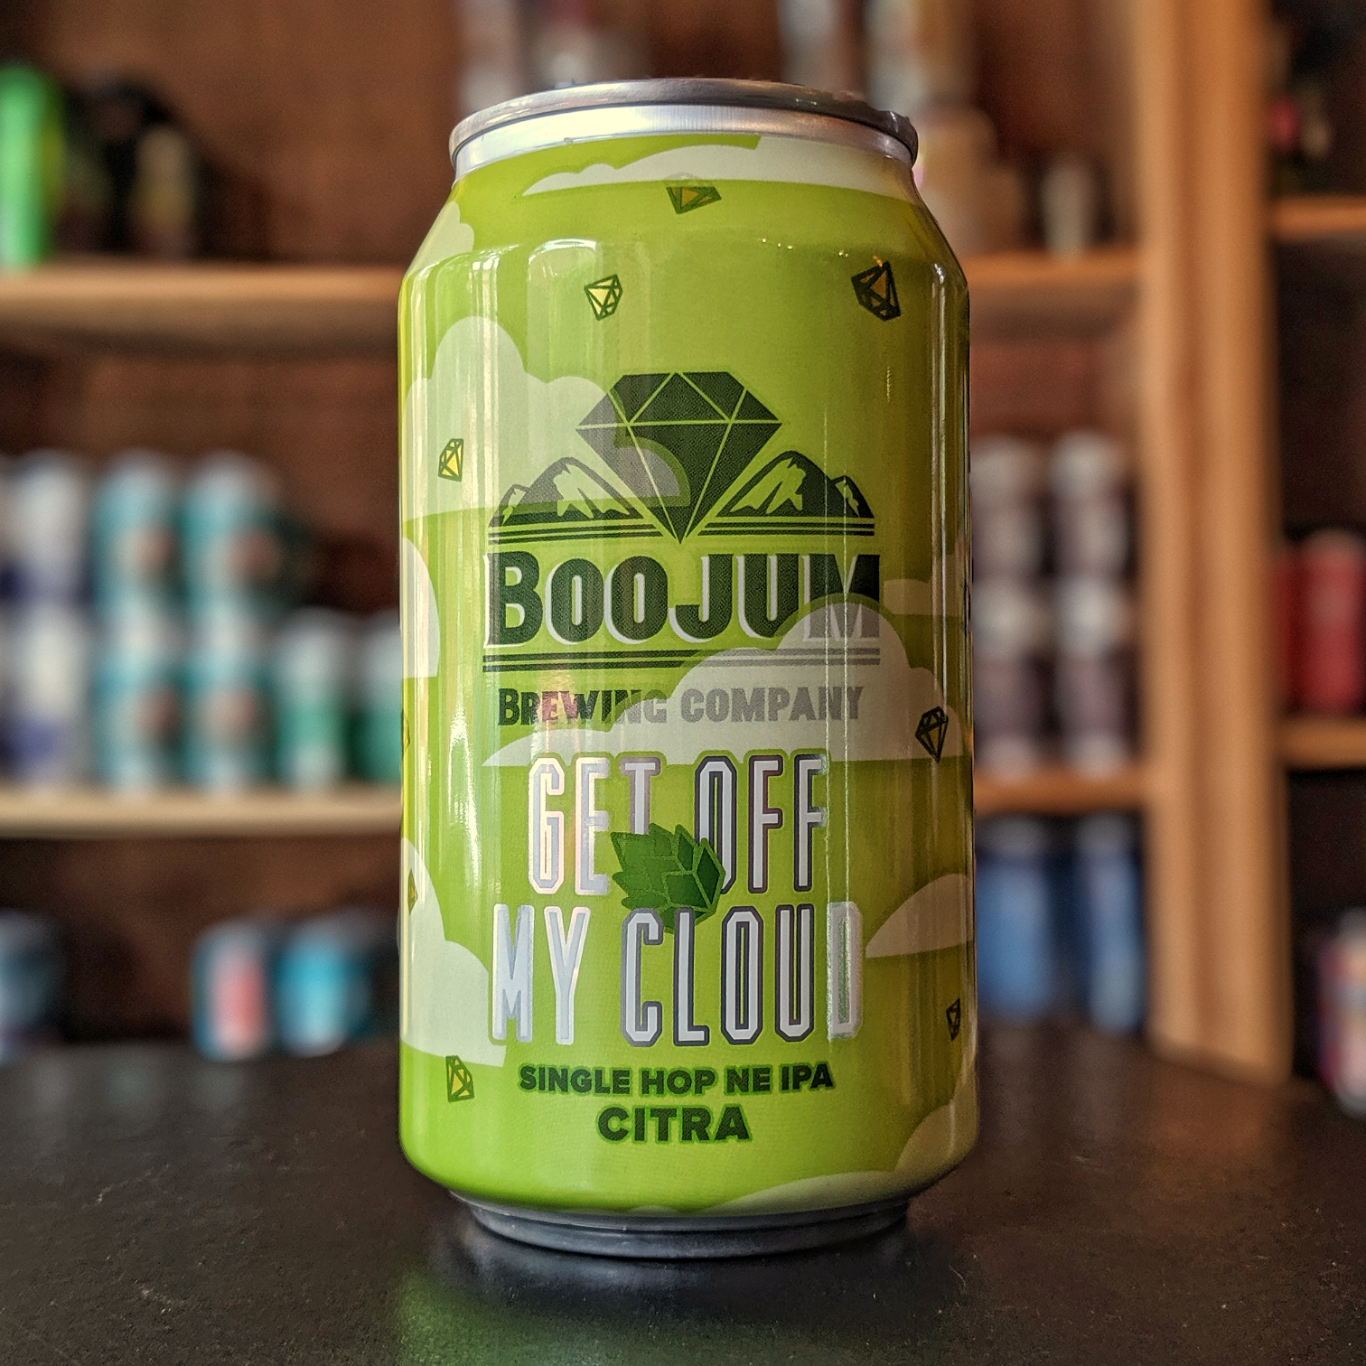 Boojum Brewing Co. 'Single Hop Get Off My Cloud - Citra' New England-style IPA 12oz Can